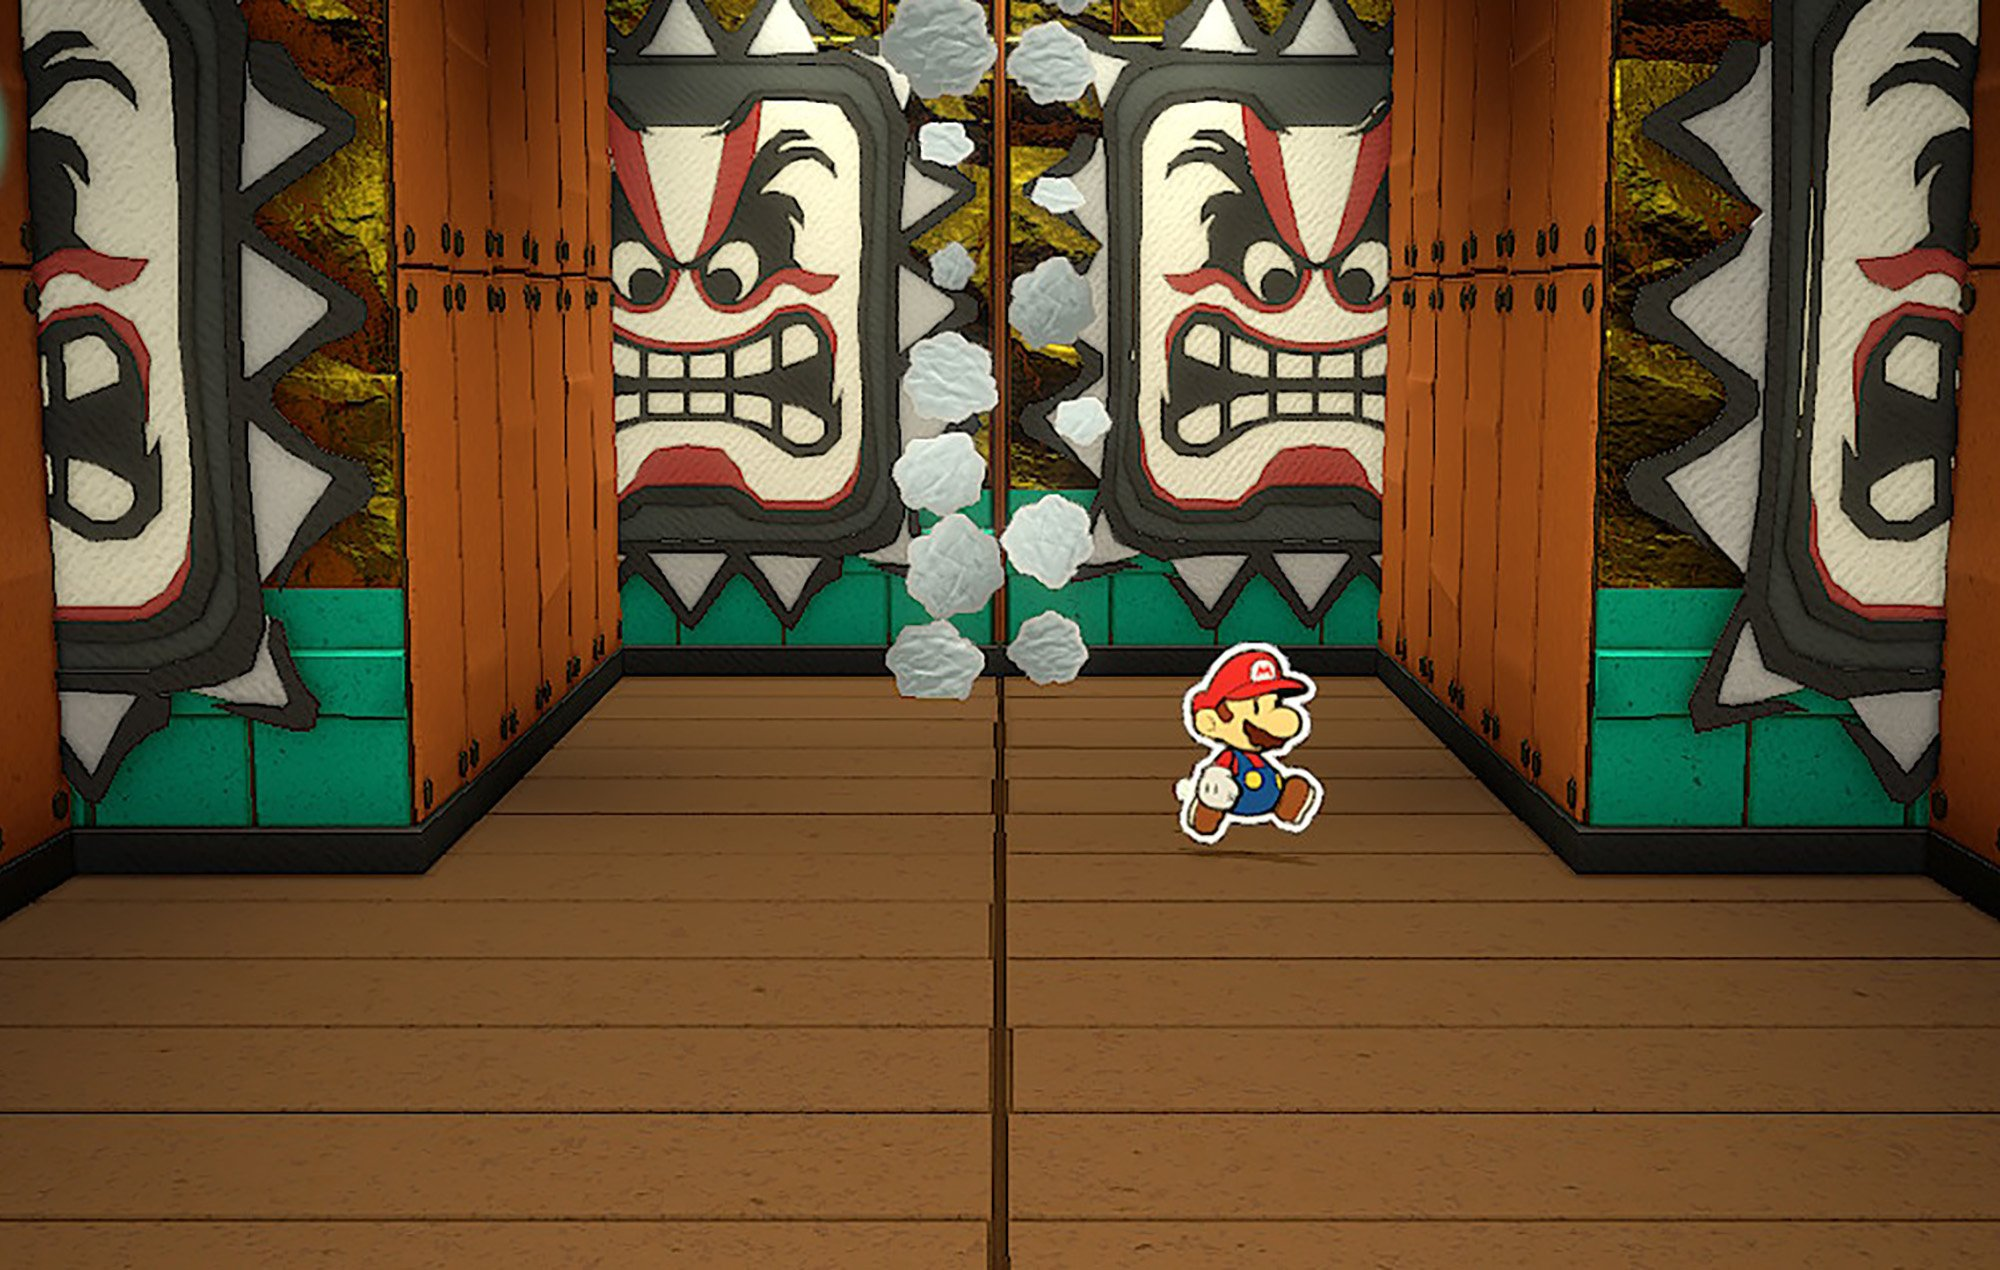 Paper Mario producer says that the team is 'unsure' on whether the series will return to its RPG roots screenshot